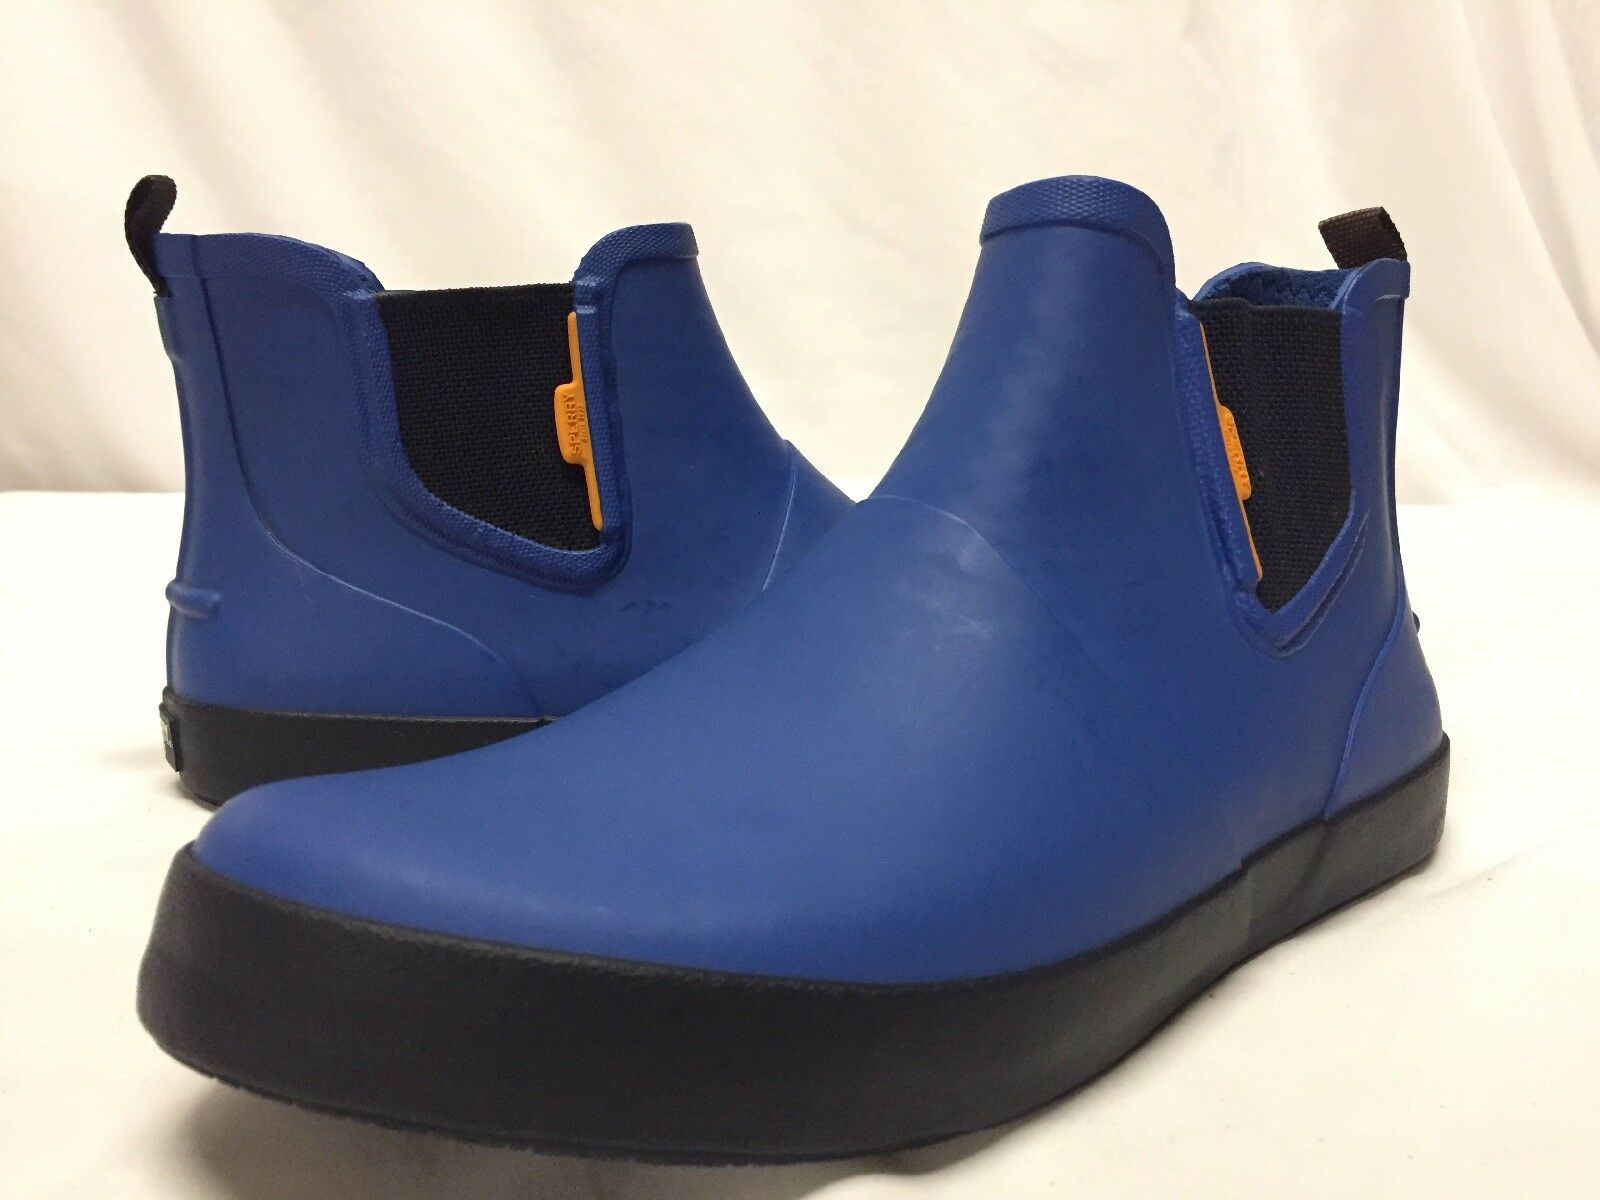 Mens Sperry Top Sider Flex Deck Chelsea   Boot, bluee, Size 9 Eur 42